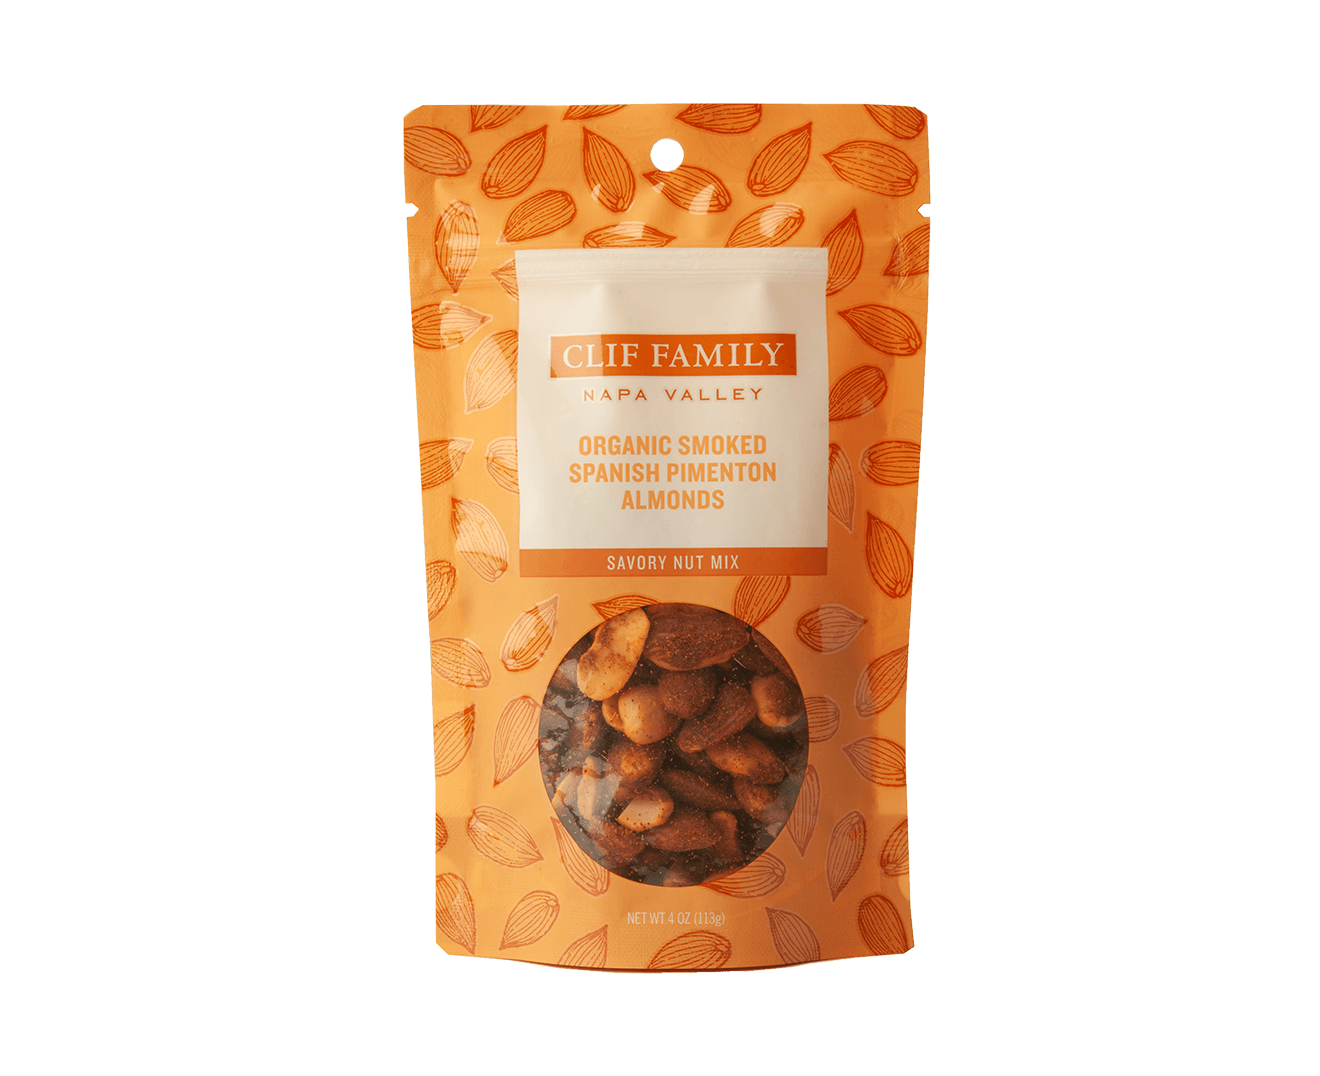 Organic Smoked Spanish Pimenton Almonds packaging